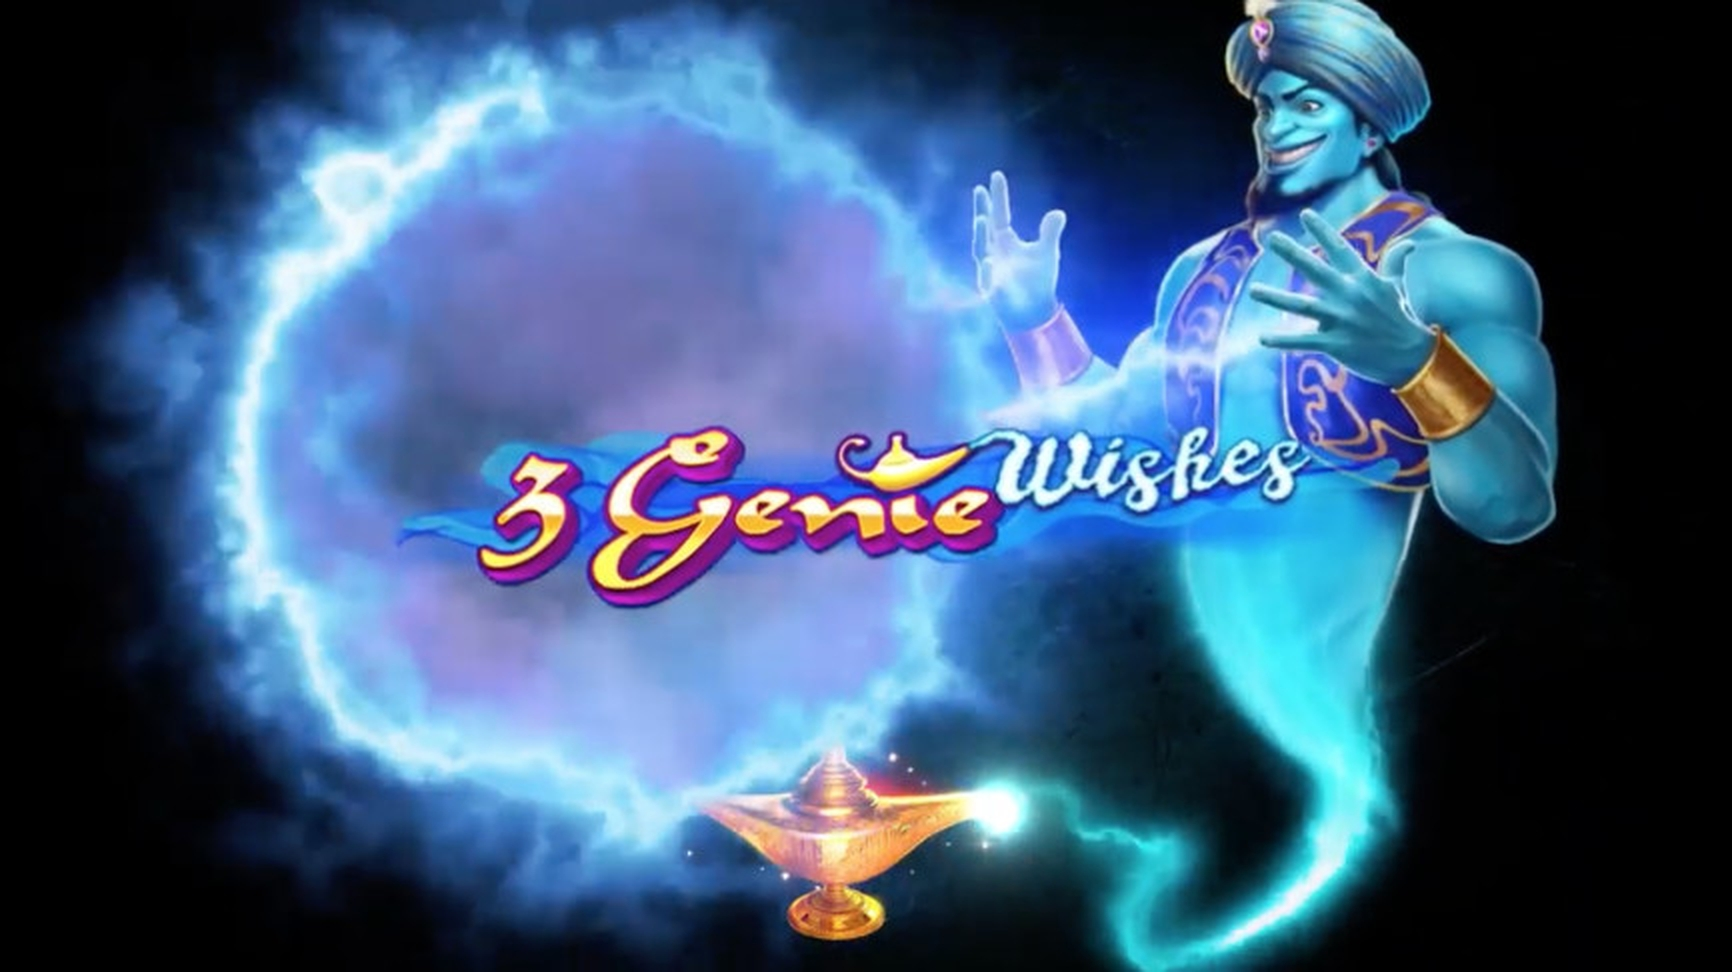 The 3 Genie Wishes Online Slot Demo Game by Pragmatic Play